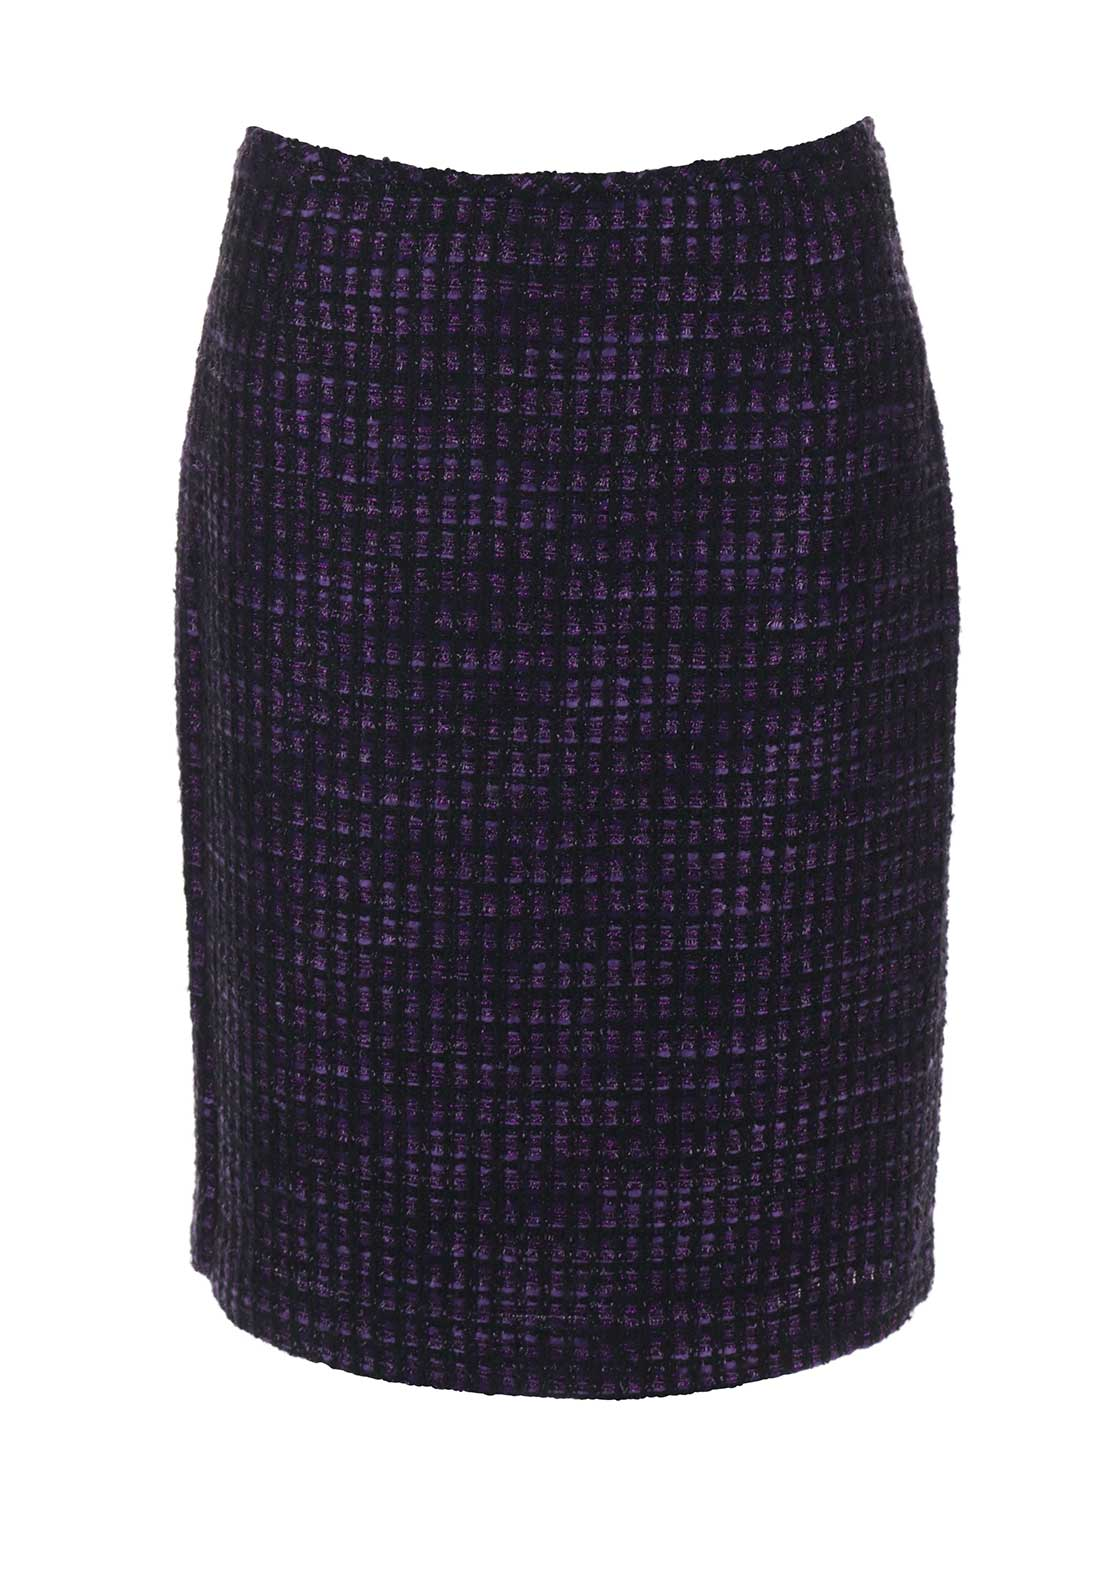 Tahari by Arthur S. Levine Boucle Skirt, Purple